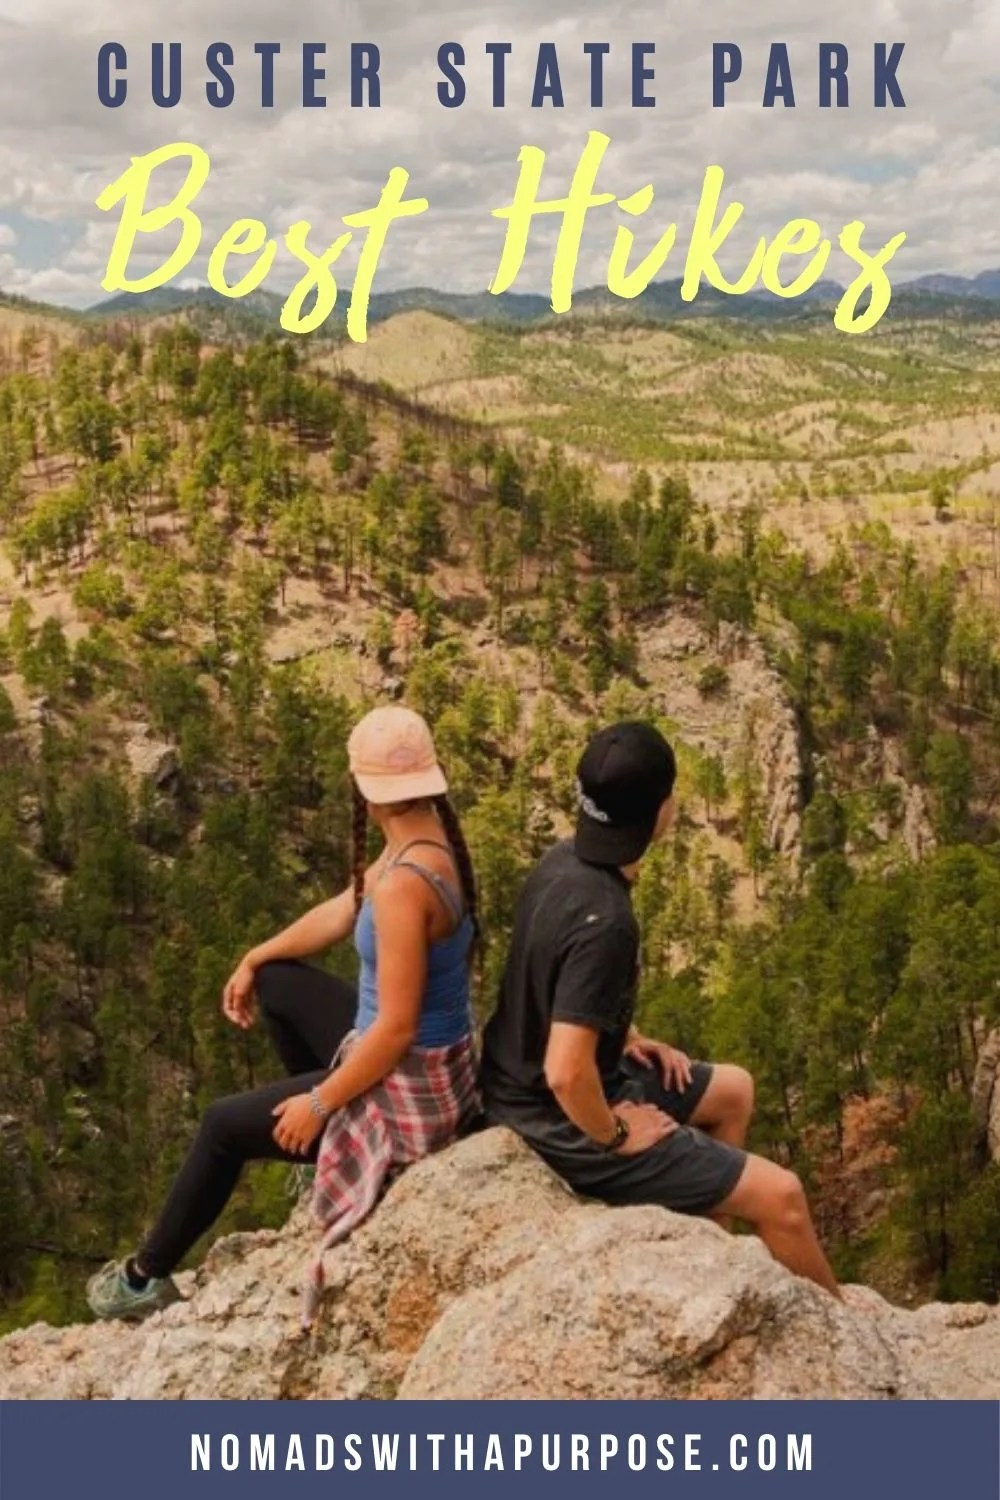 Best Hikes Custer State Park